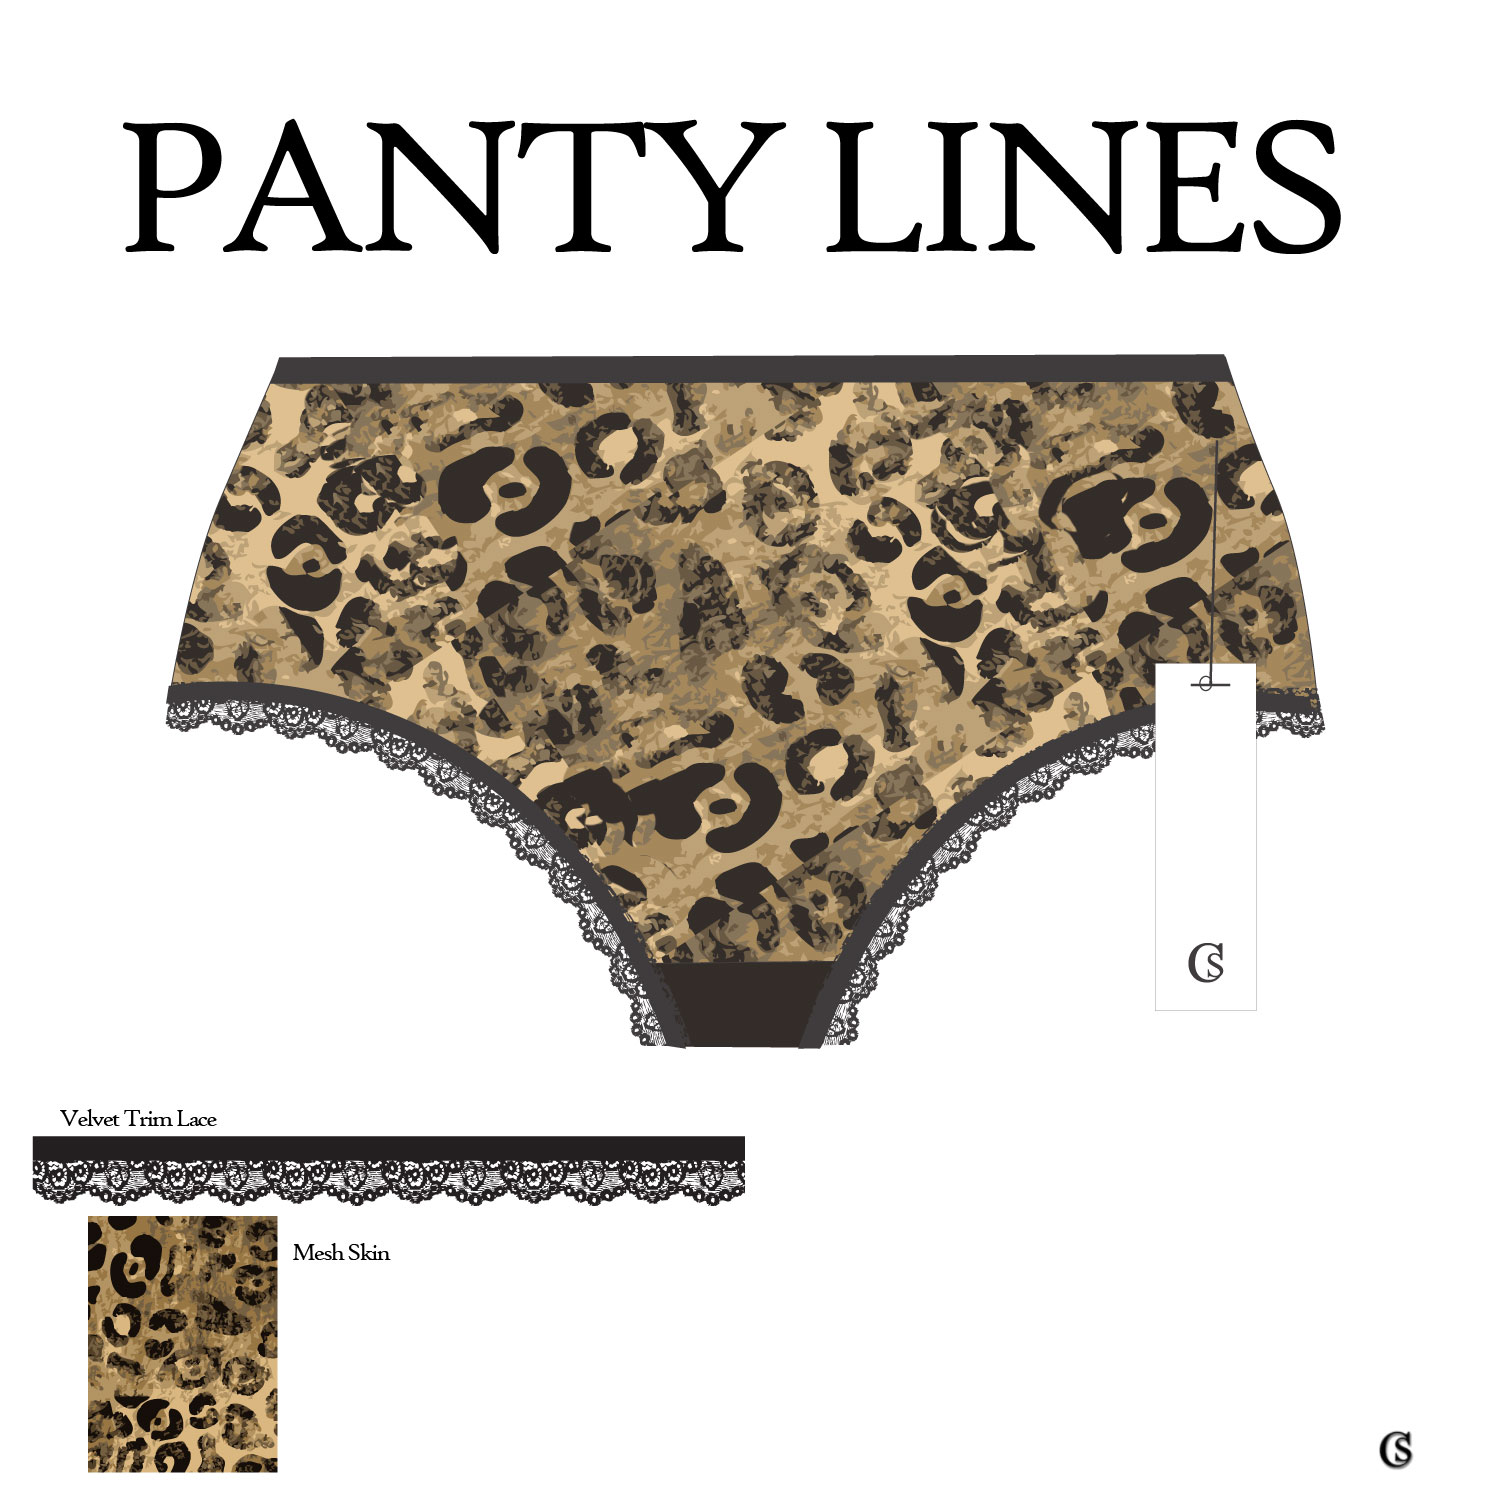 panty-lines-mesh-skin-print-with-velvet-lace-chiaristyle.jpg